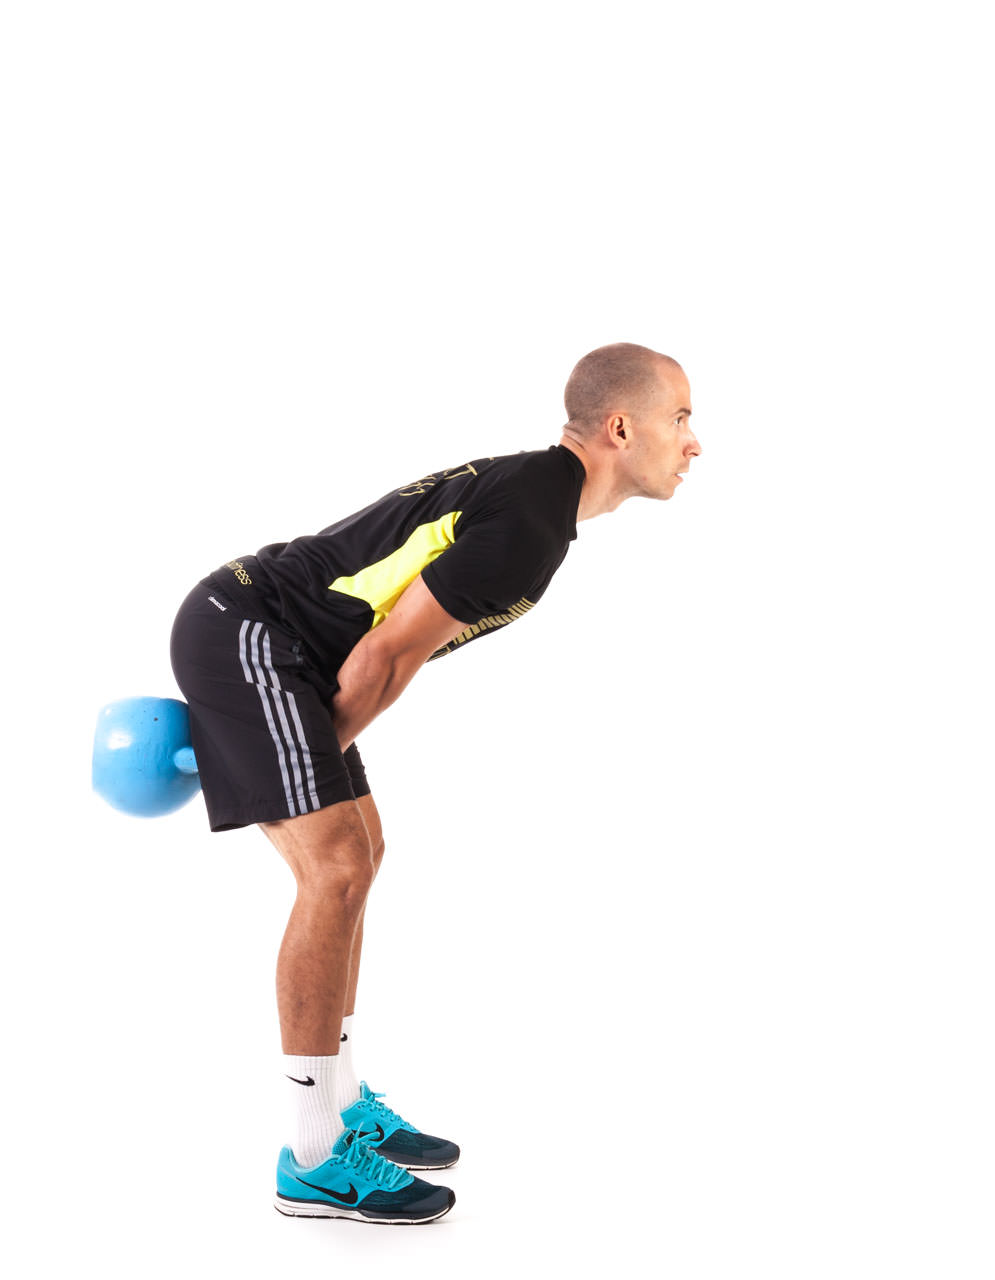 Two-Arm Kettlebell Swing frame #8